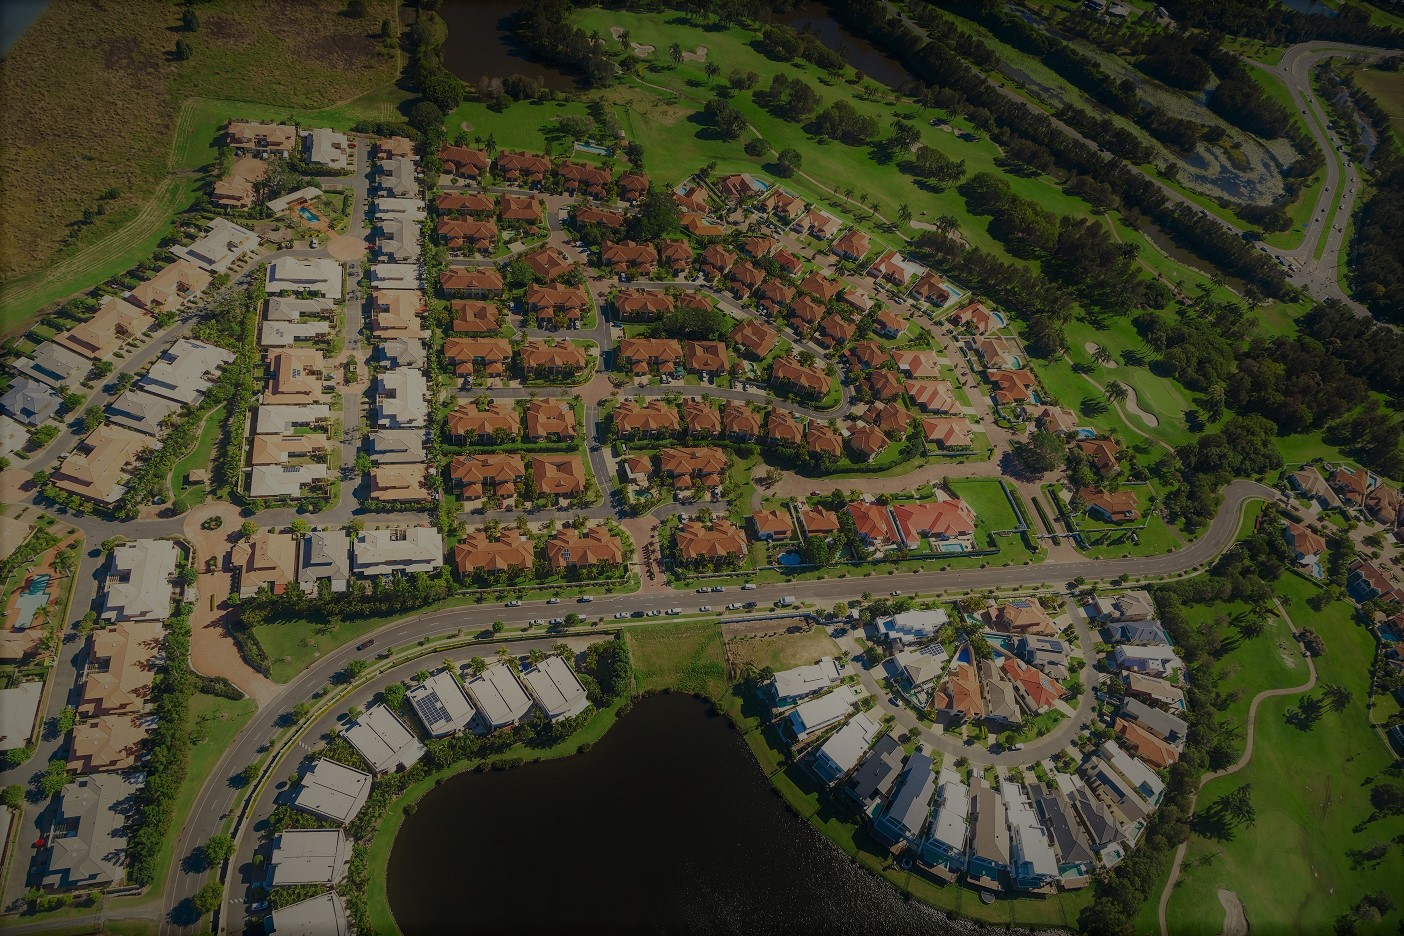 Already have a property in mind on the Gold Coast? Want a second opinion? - Get an independent Property Assessment to help you make an informed decision